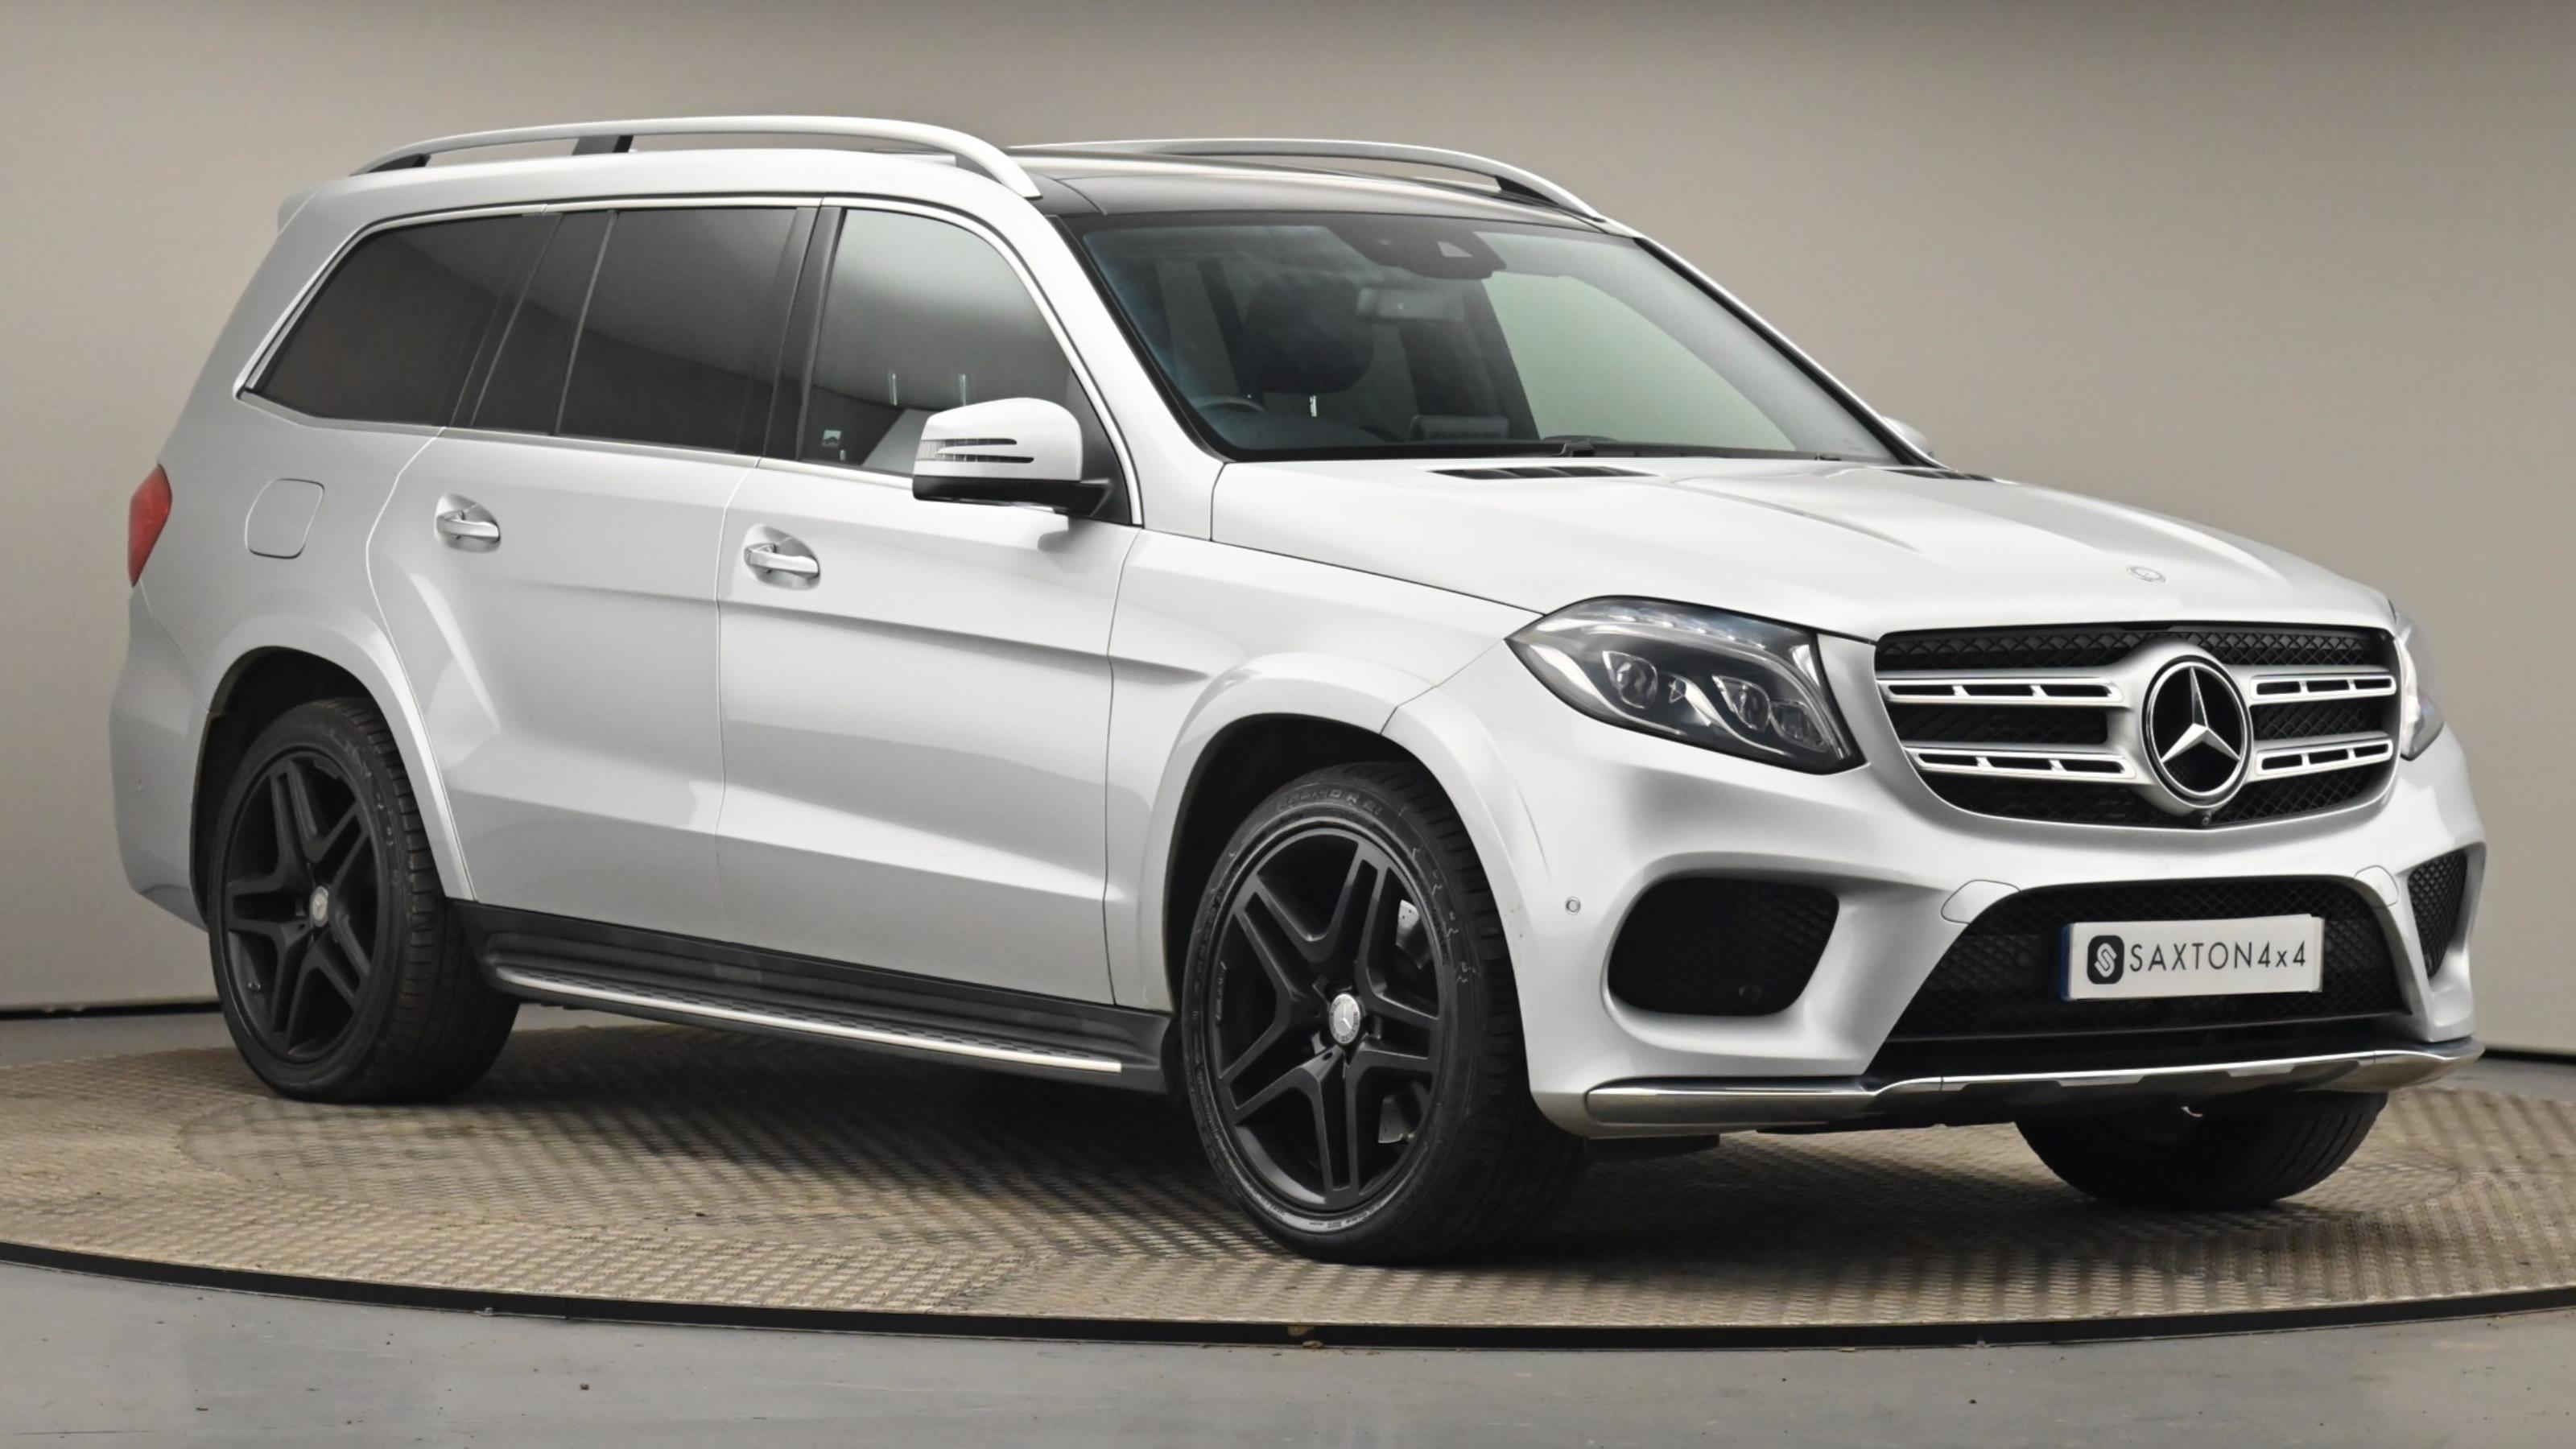 Used 2016 Mercedes-Benz GLS GLS 350d 4Matic AMG Line 5dr 9G-Tronic at Saxton4x4